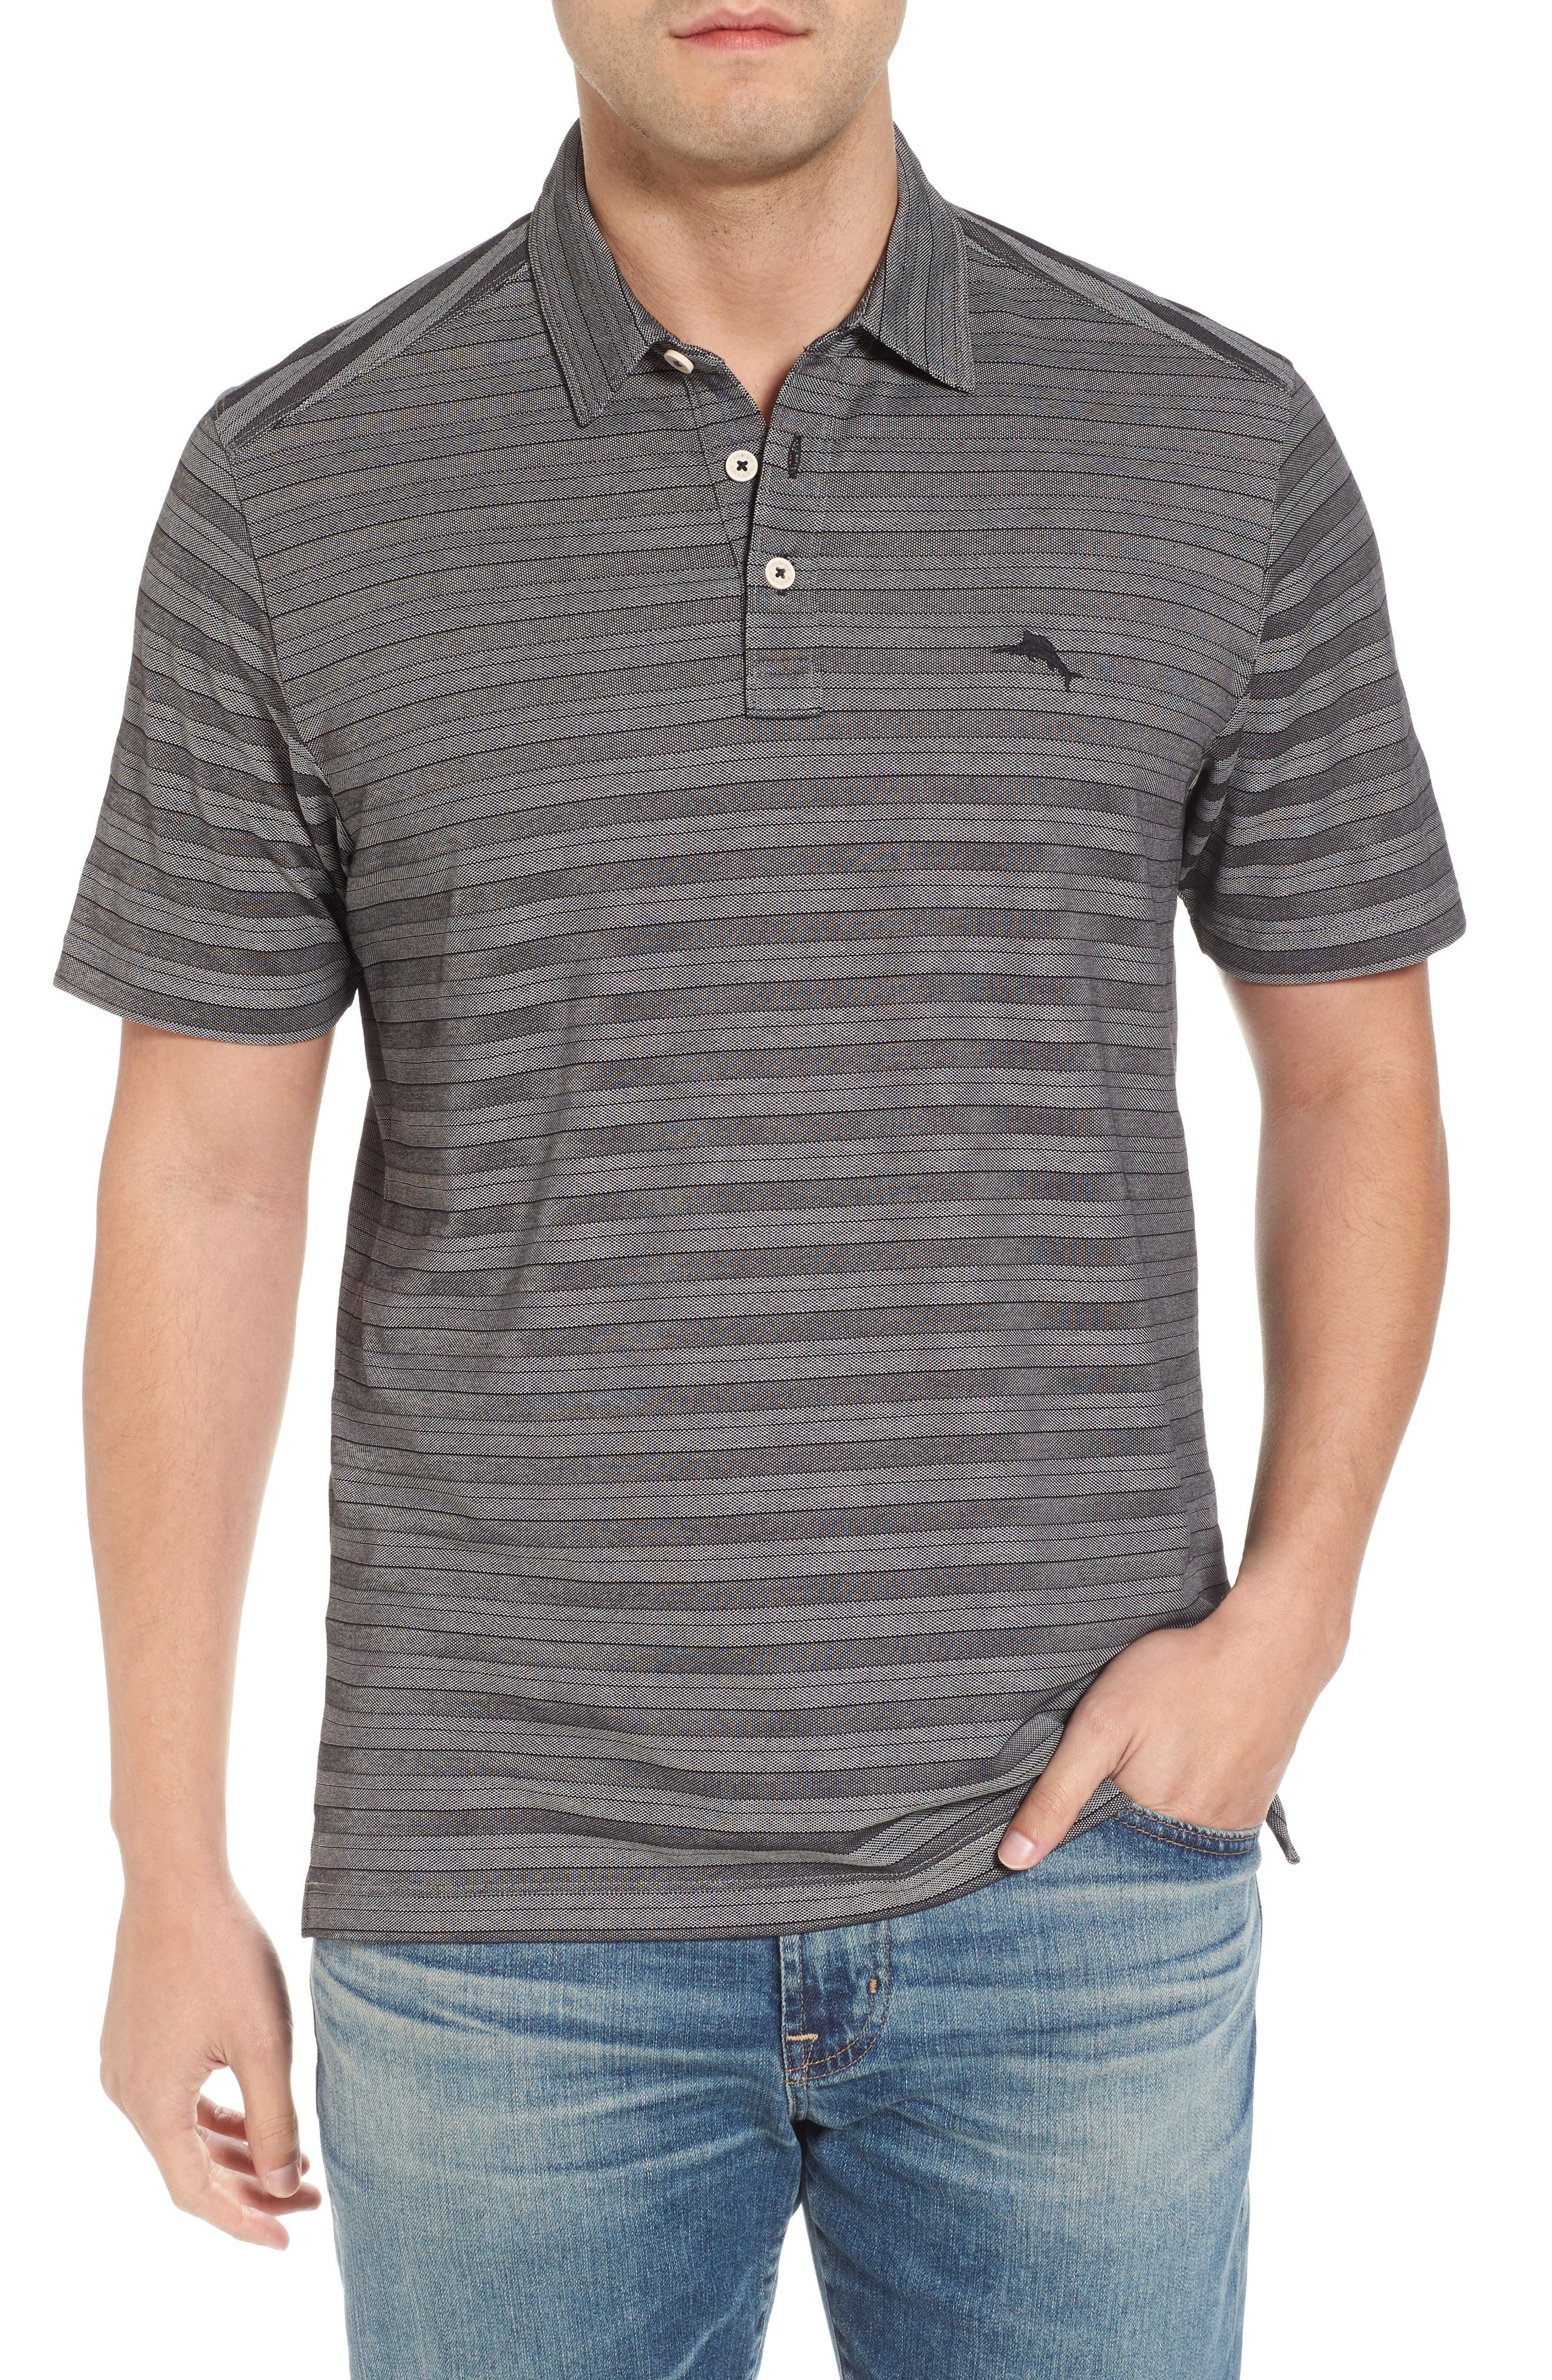 Tropicool Tides Stripe Polo,                             Main thumbnail 1, color,                             001